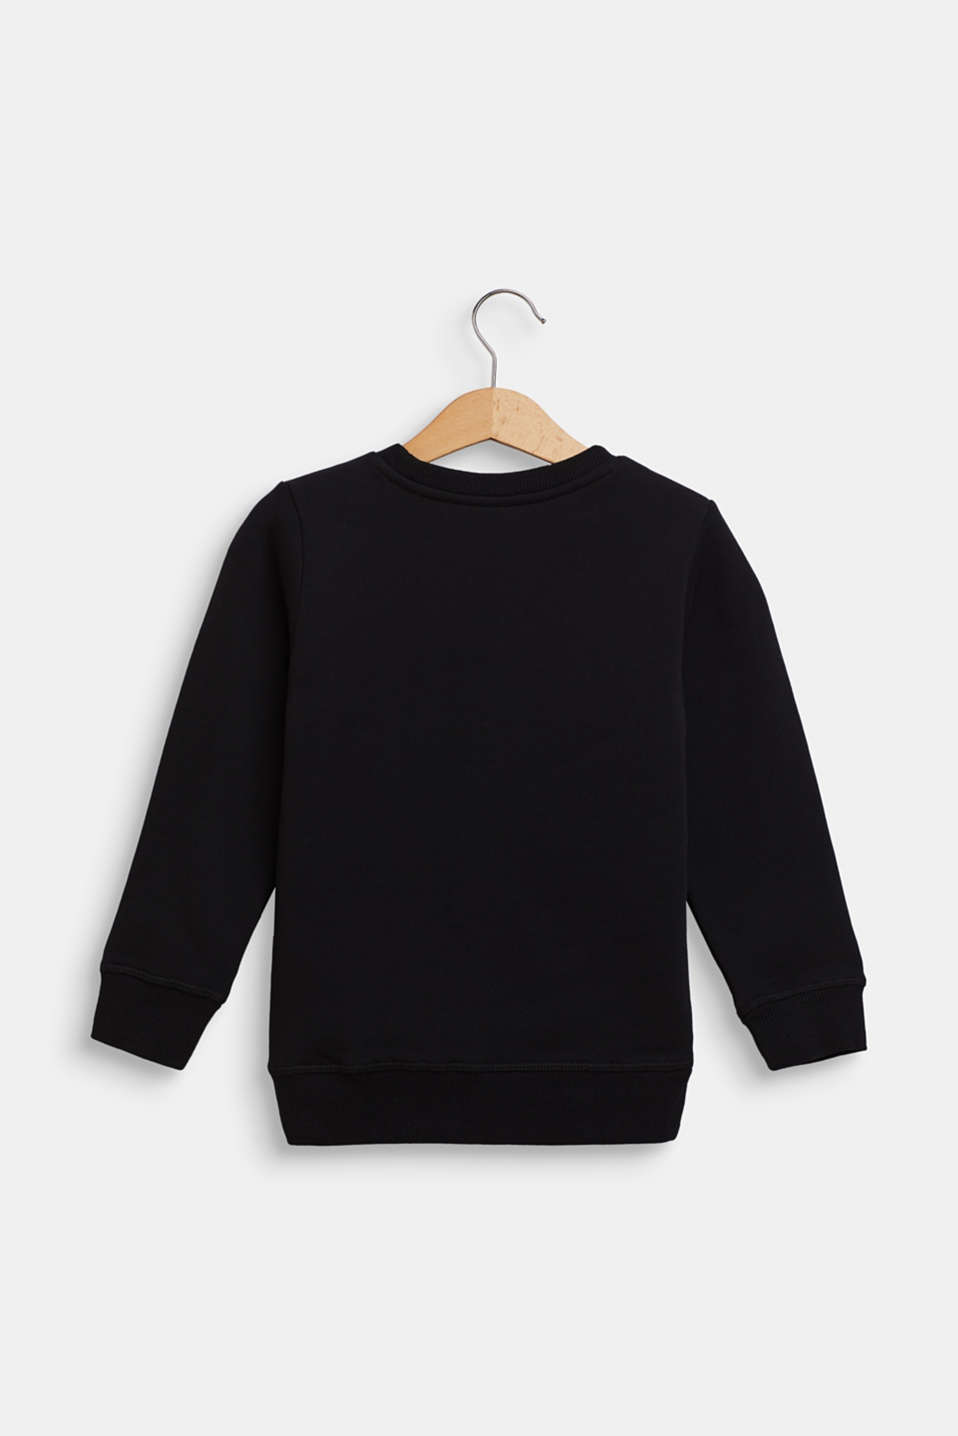 Statement sweatshirt made of 100% cotton, BLACK, detail image number 1